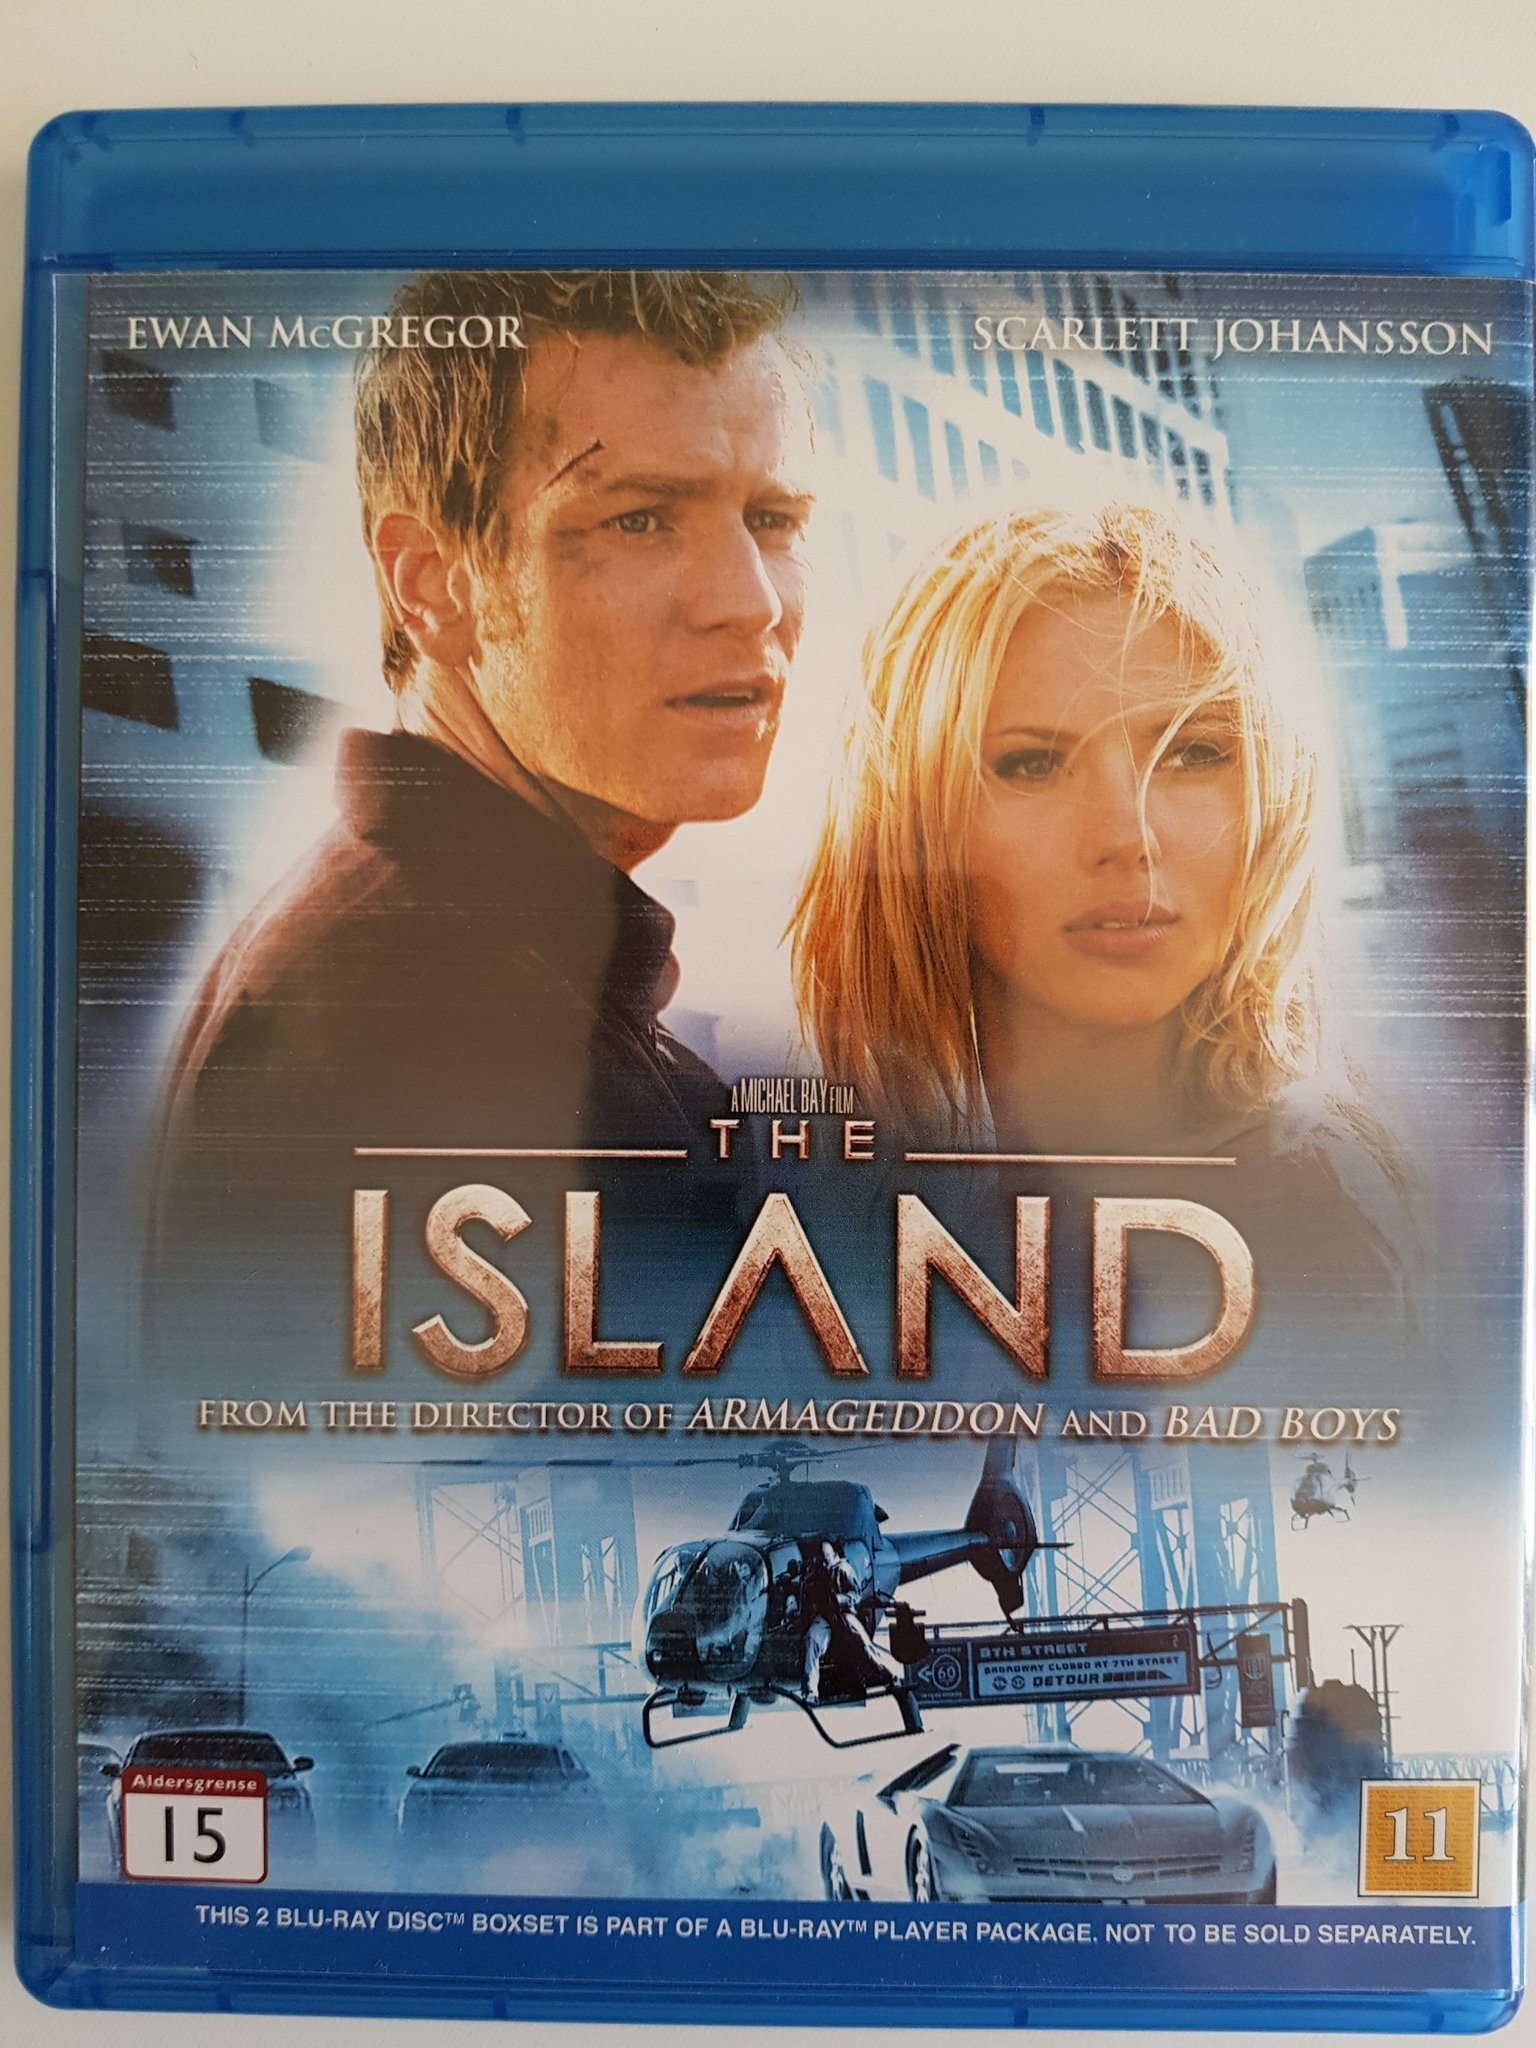 The Island & Blood diamond